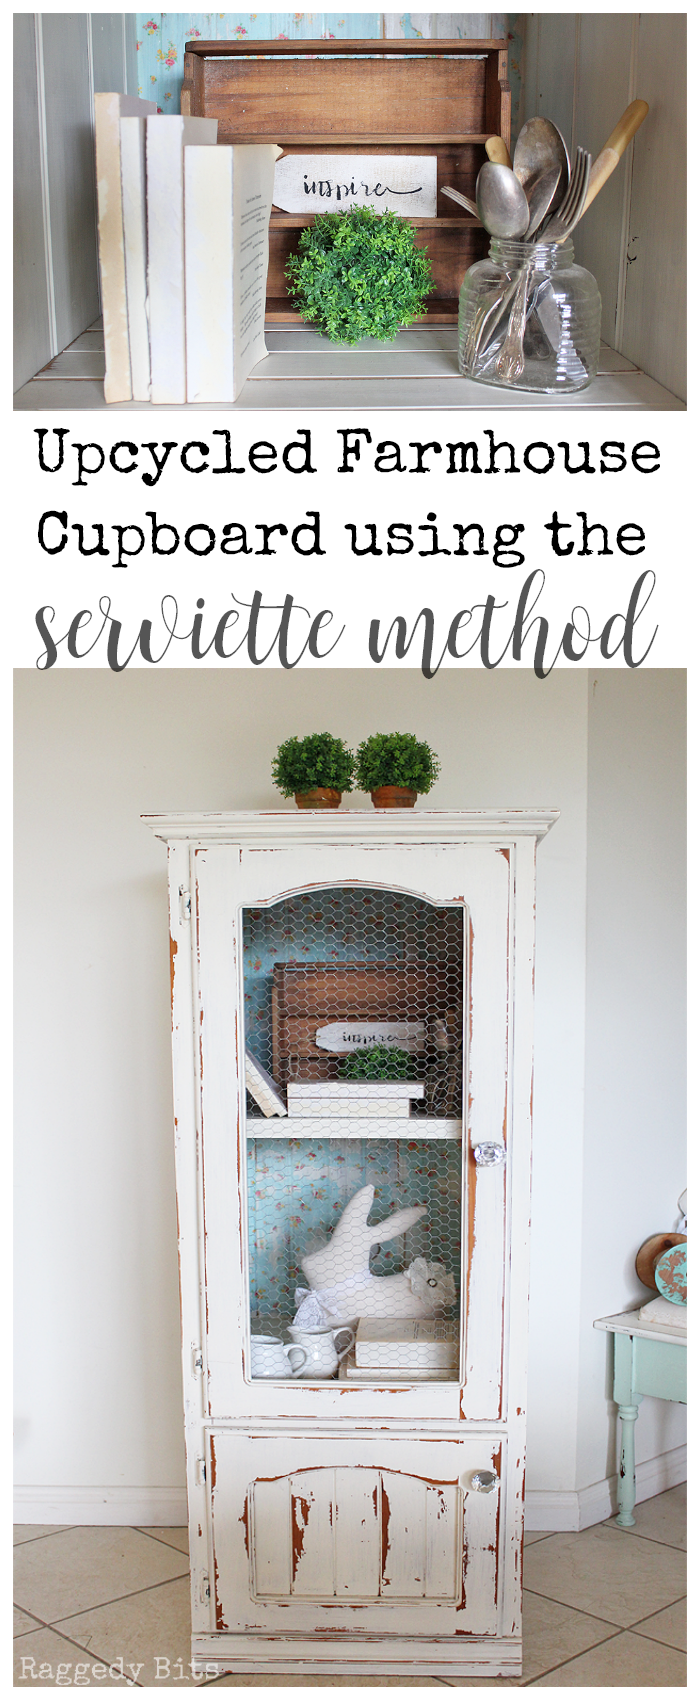 Sharing how to I Upcycled a Farmhouse Cupboard using the Serviette Method | www.raggedy-bits.com | #upcycled #cupboard #farmhouse #serviette #raggedybits #DIY #paintedfurniture